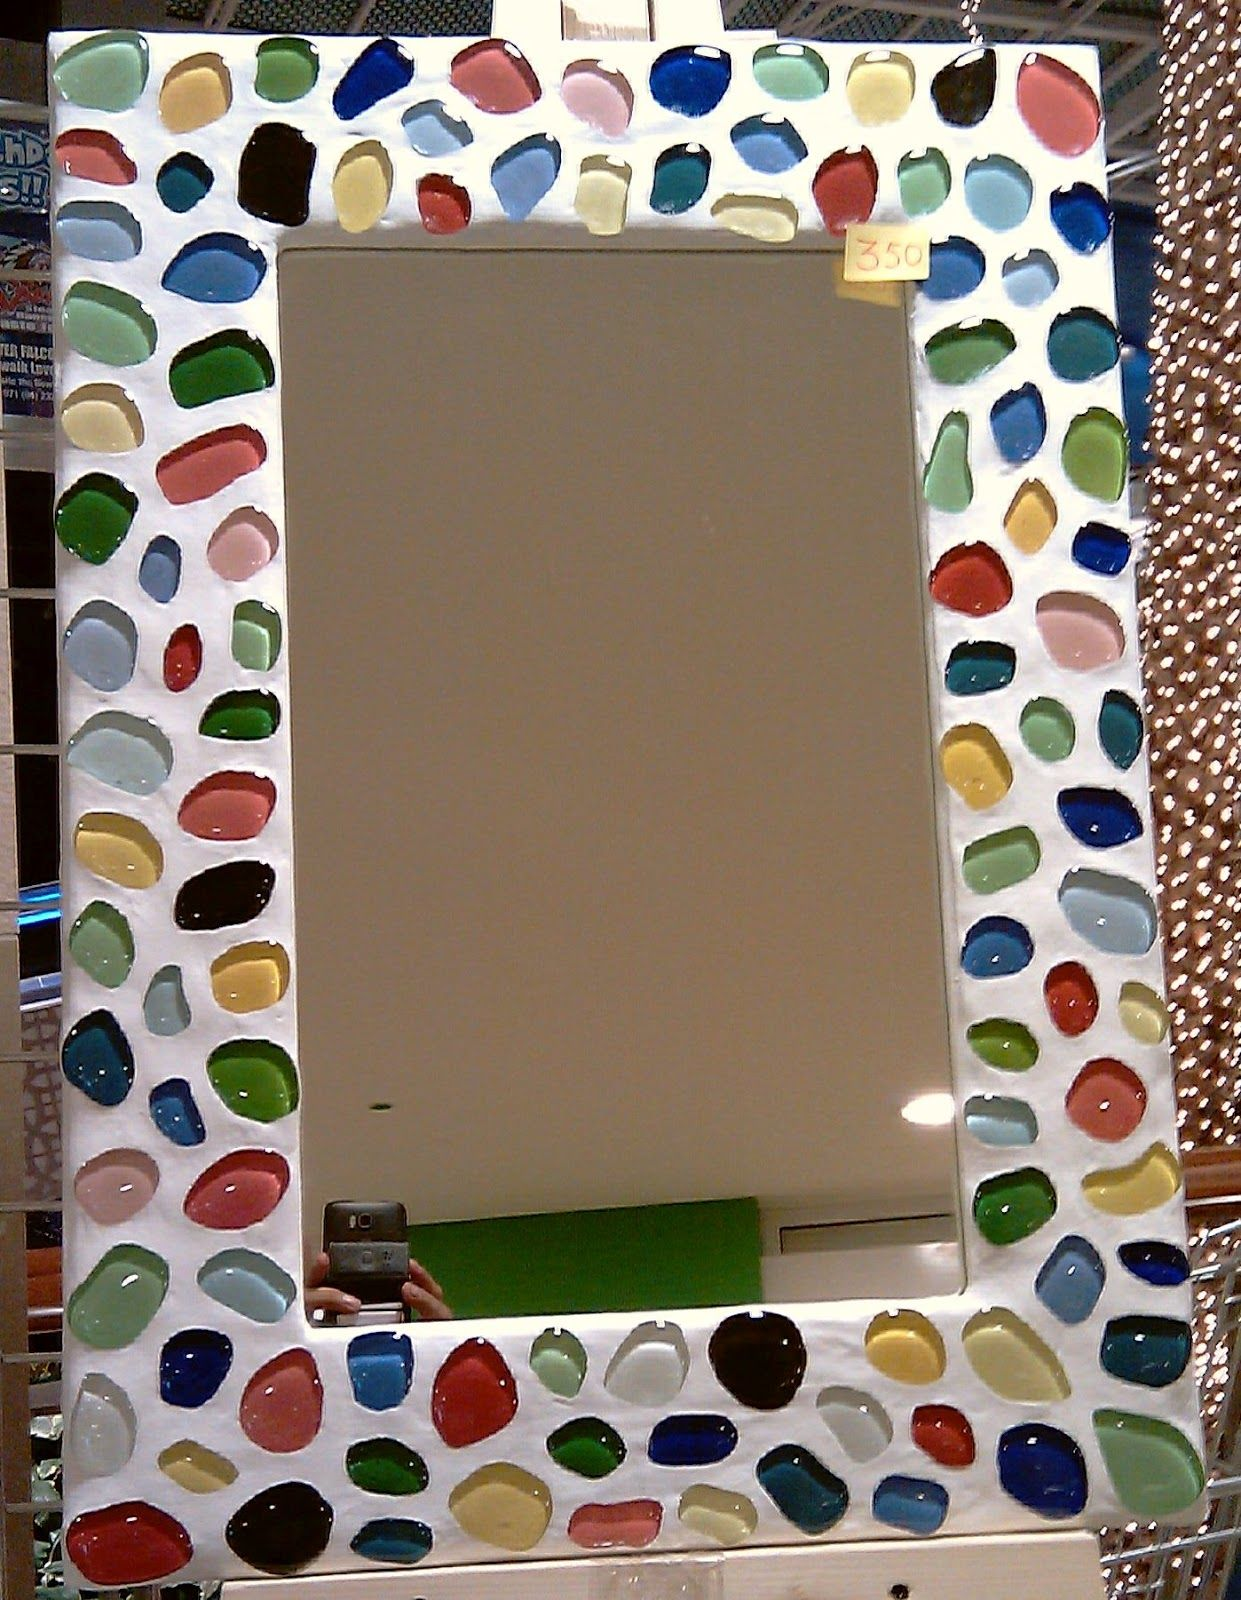 creative arts dubai cad wall mirror photo frames decorated with glass mosaic - Decorated Mirror